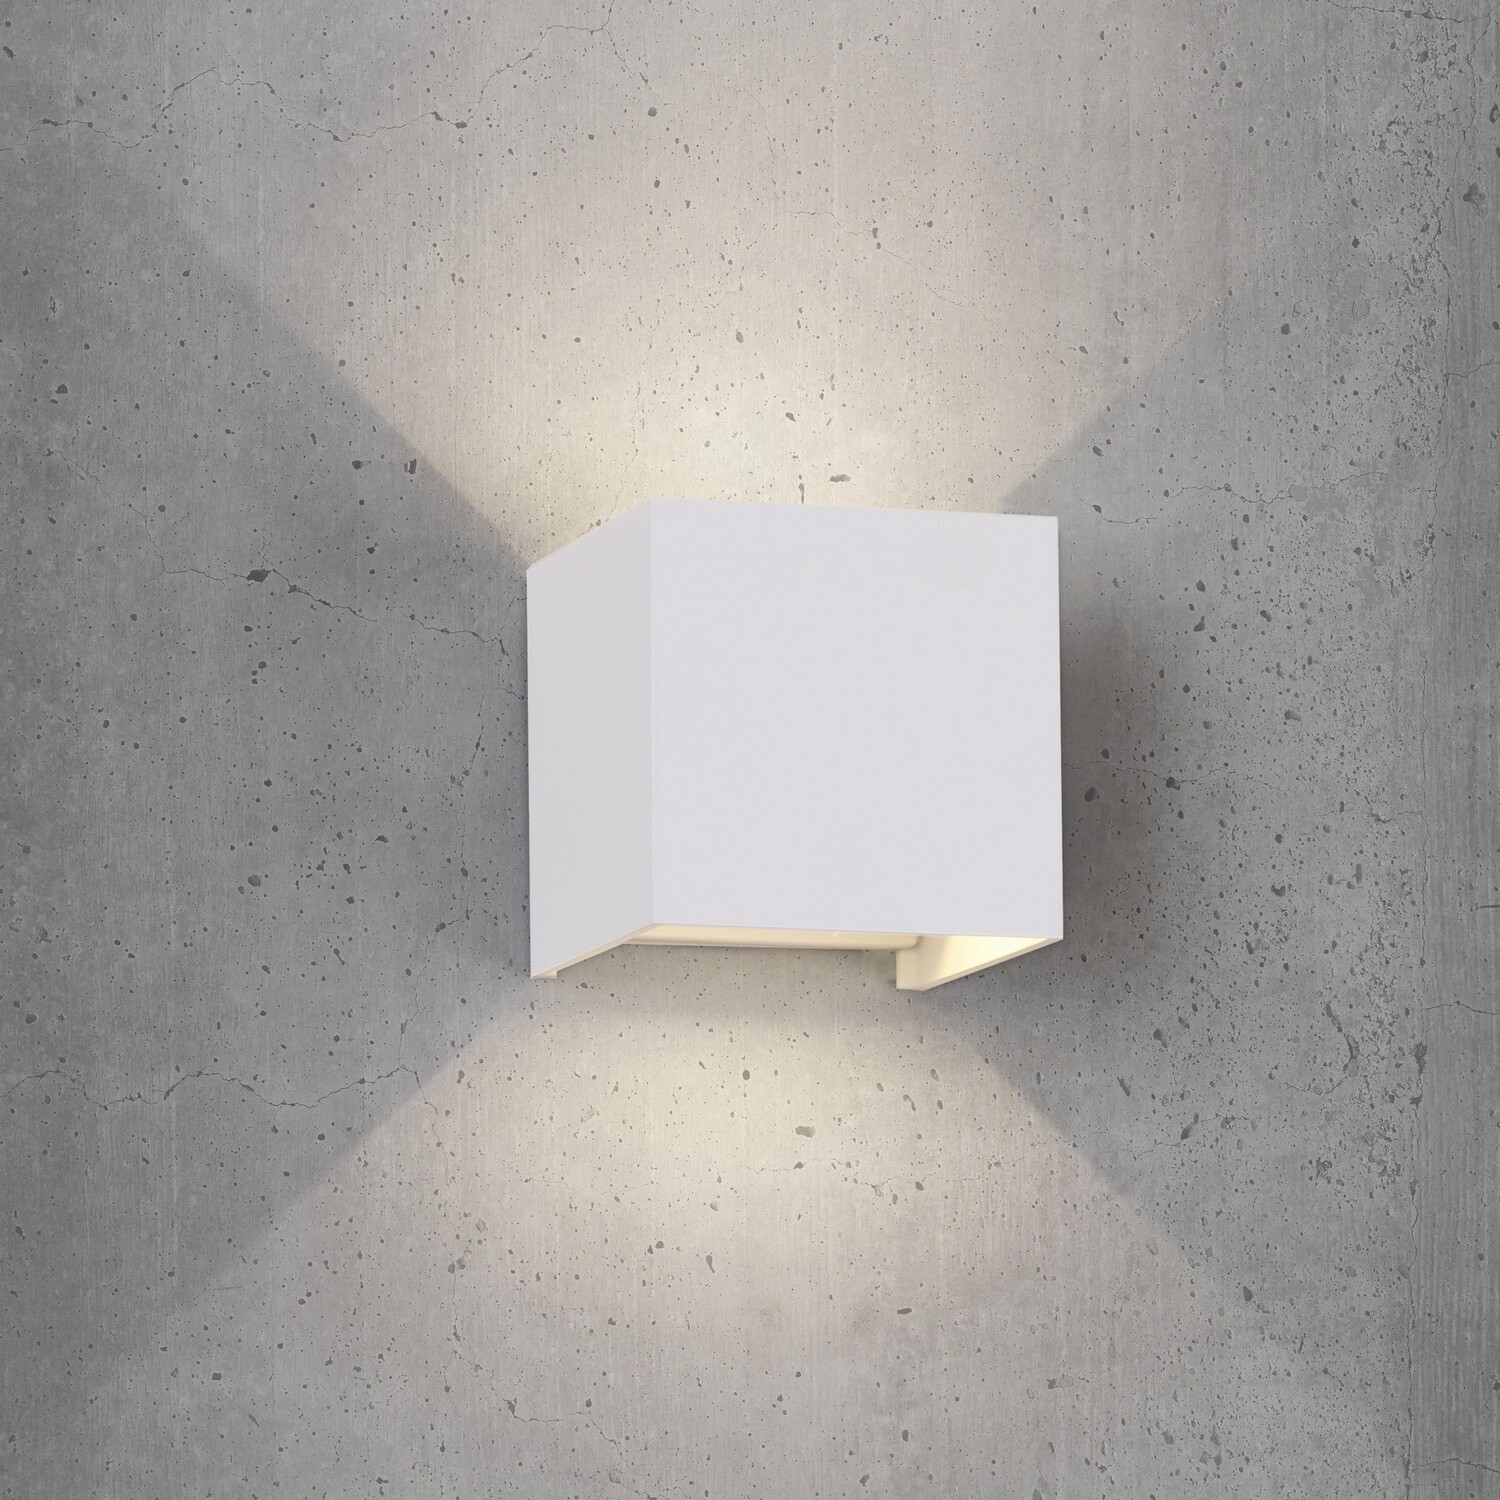 Davos Wall Lamp cube, 12W LED, 3000K, 1100lm, IP54, Sand White